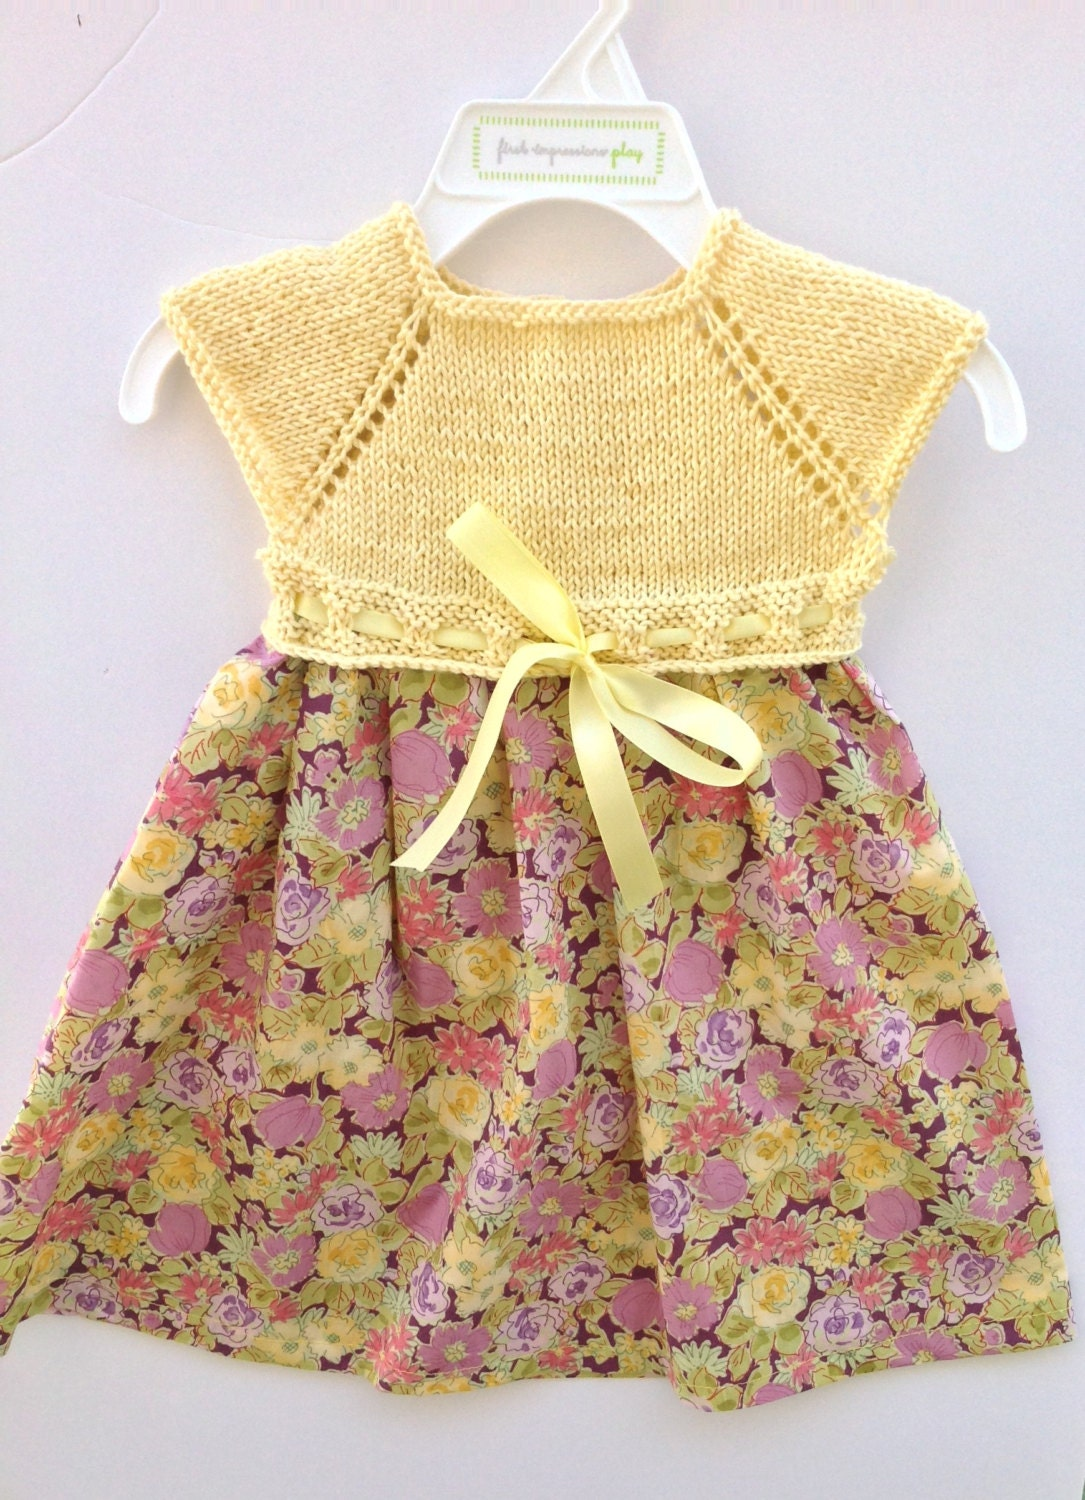 Knit baby dress knit and fabric baby dress knit top floral